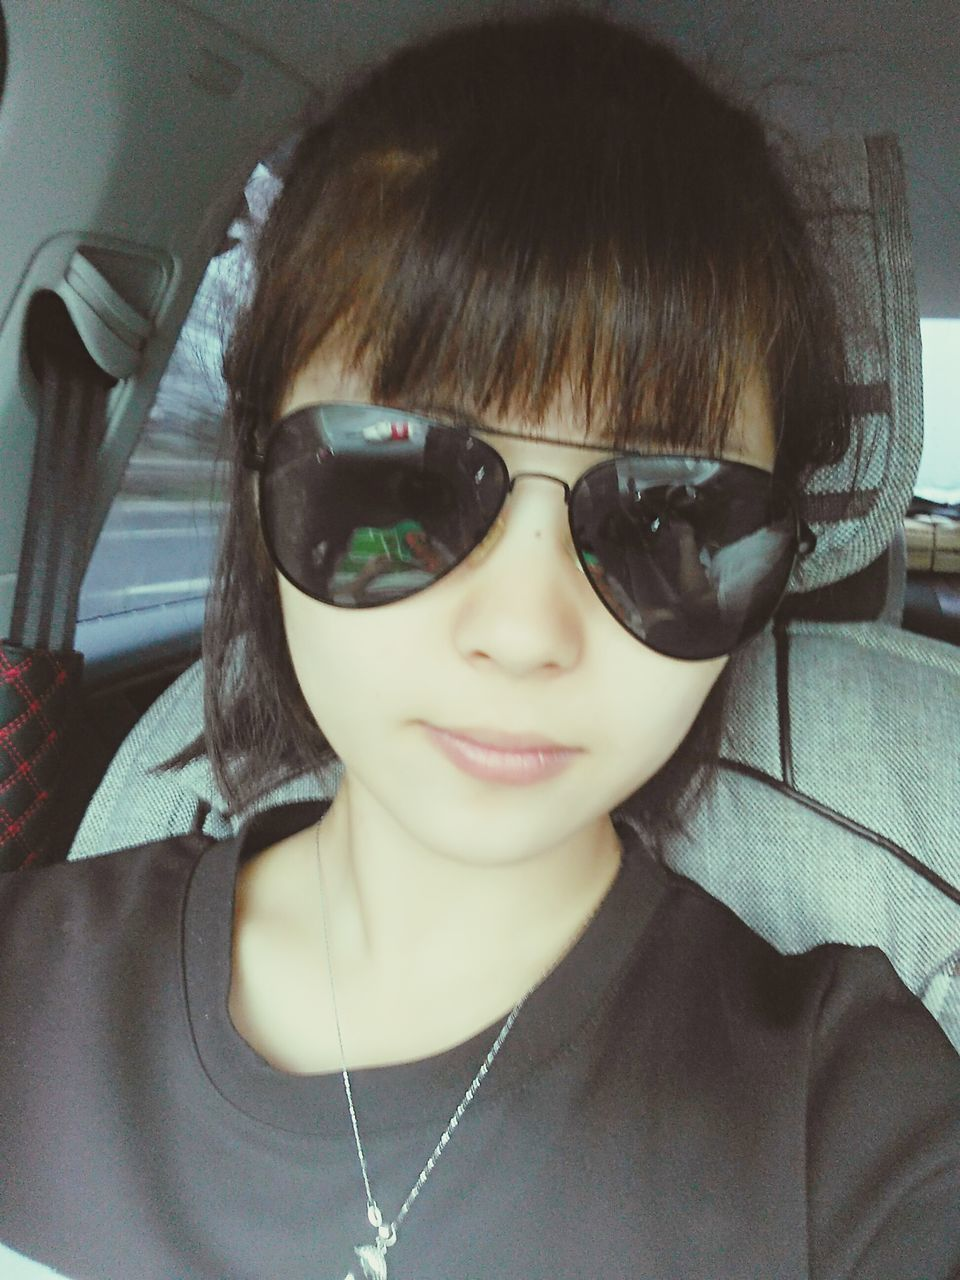 sunglasses, real people, front view, looking at camera, one person, portrait, indoors, eyeglasses, lifestyles, elementary age, leisure activity, casual clothing, headshot, bangs, glasses, young adult, day, childhood, close-up, young women